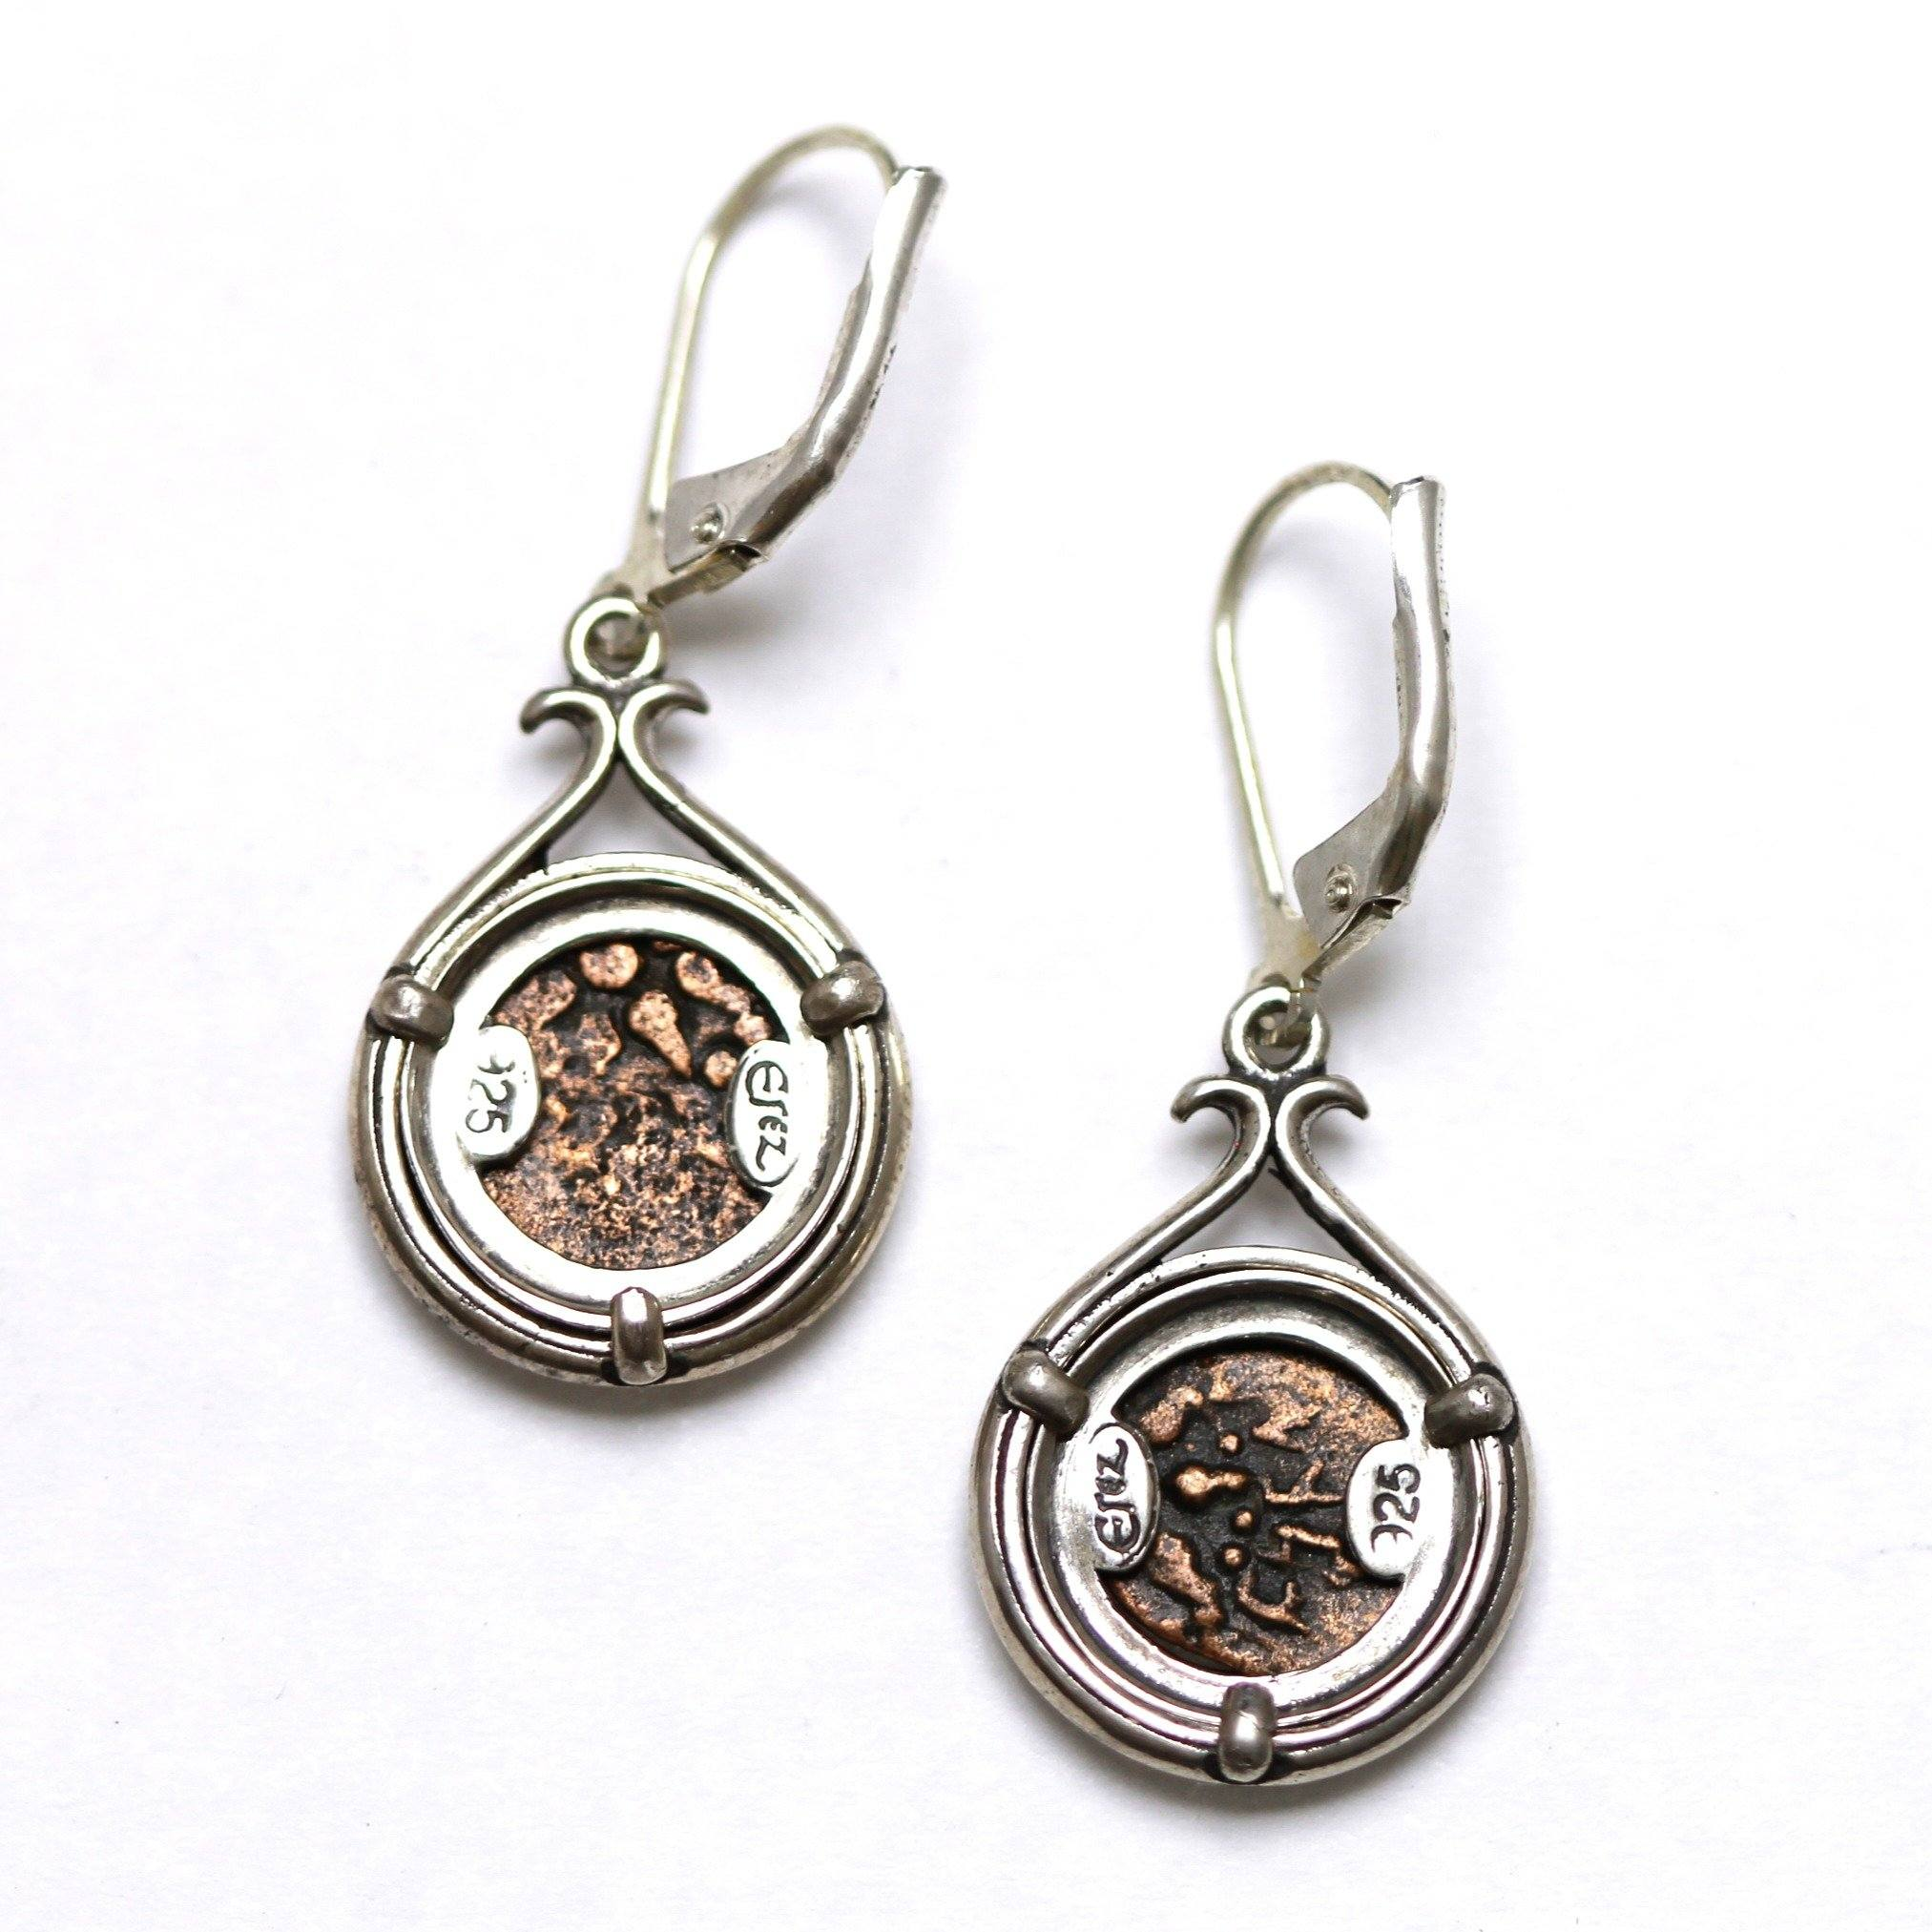 Sterling Silver Earrings, Widows Mite, Ancient Judaean Coin, ID13372 - Erez Ancient Coin Jewelry, ancient coin jewelry, men jewelry, genuine ancient coins, made in the US